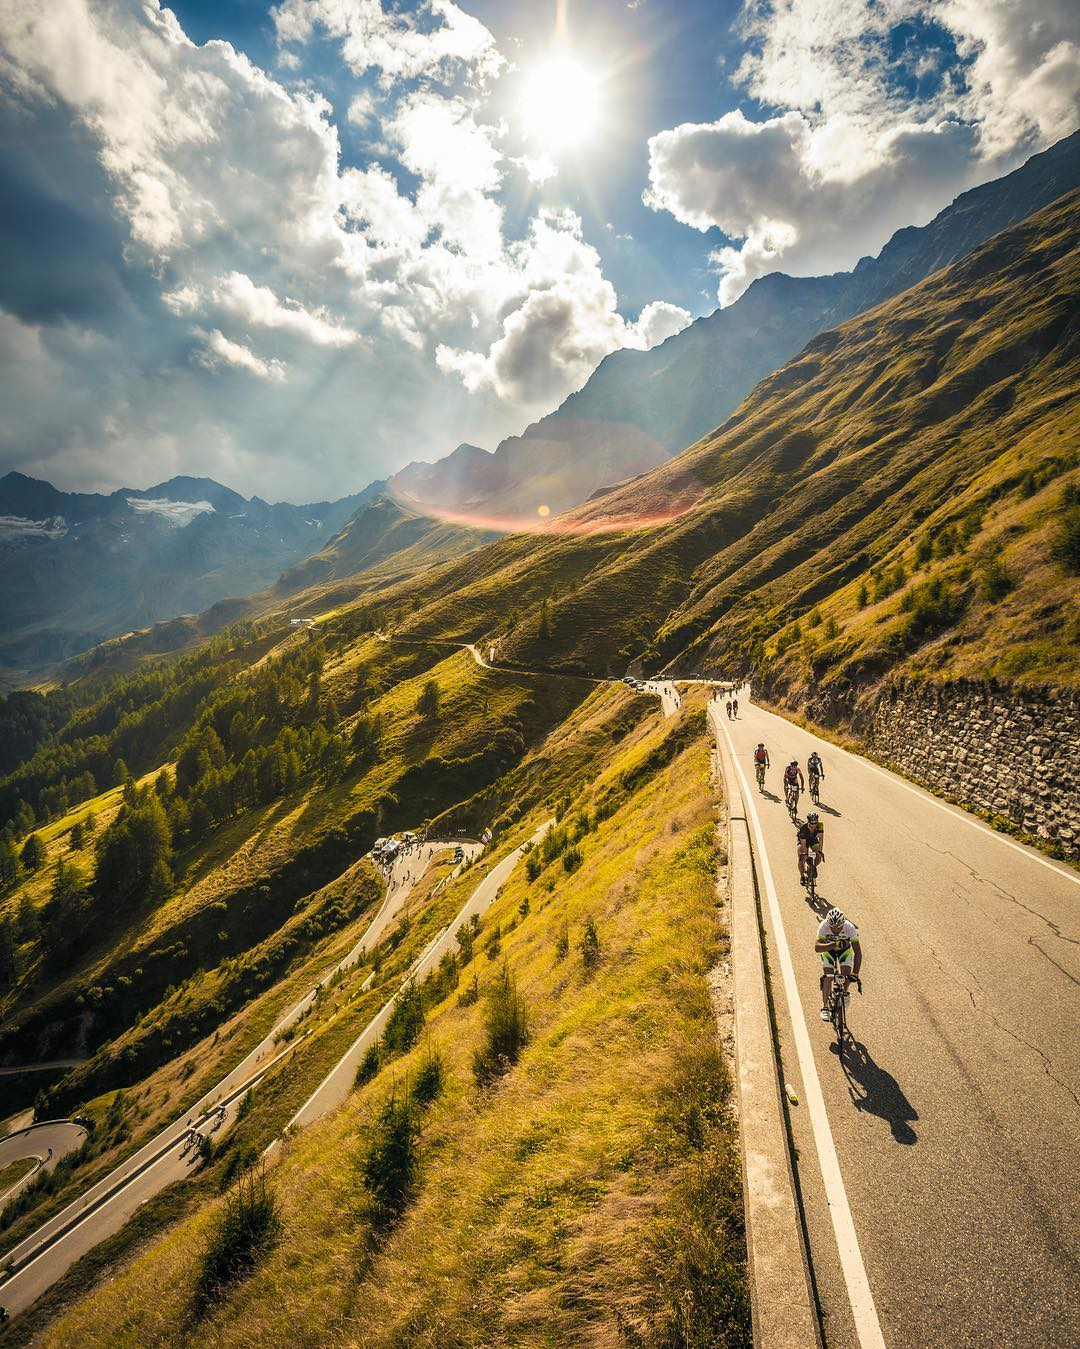 Ötztaler Radmarathon is a 238km long cycling tour in the Alps.